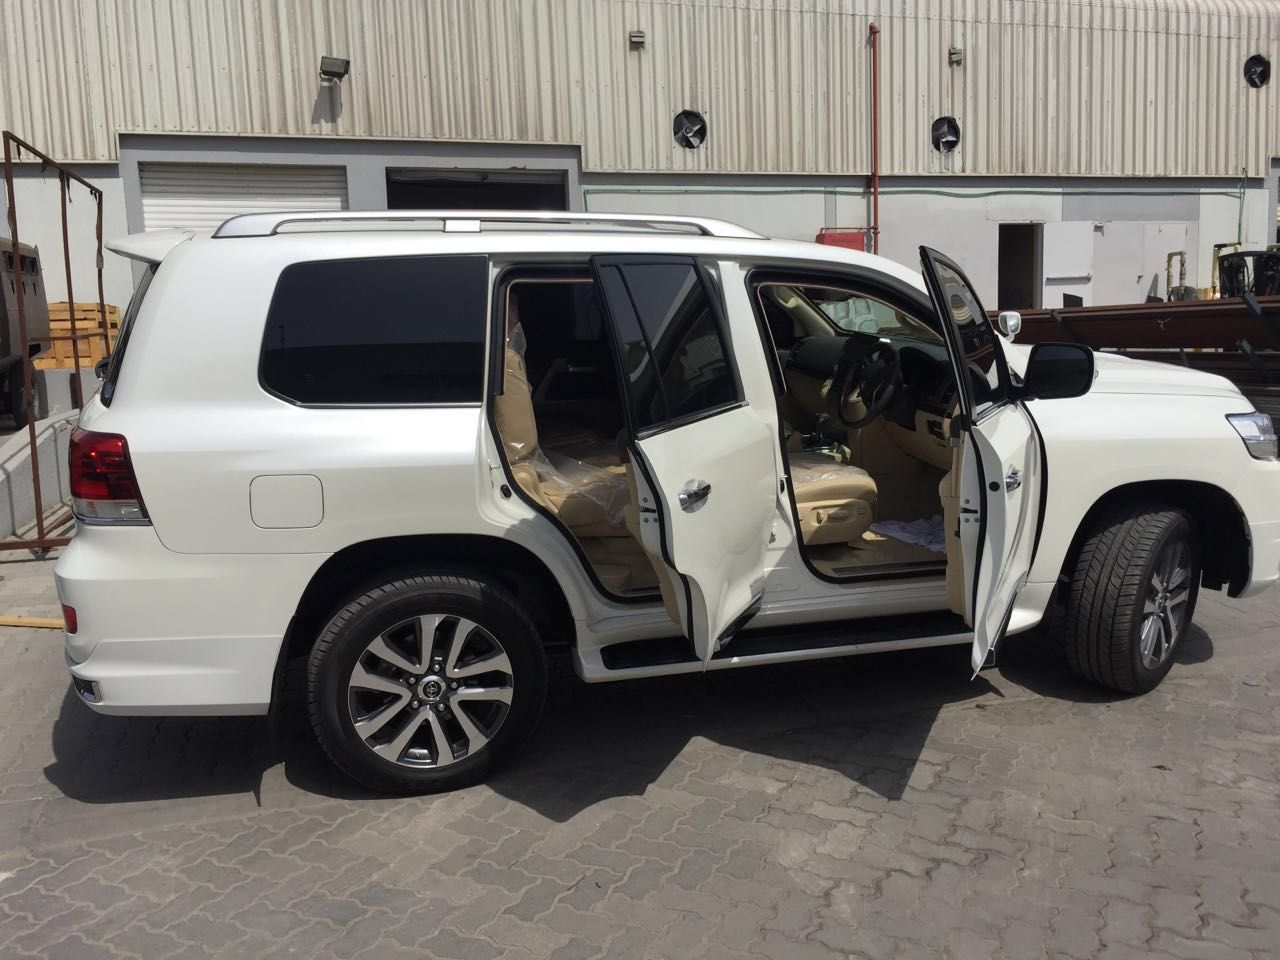 Pin By Daz Zle On Toyota Landcruiser B6 Armored Petrol 4 6l V8 Engine Quick Sale Ready For Shipping Uae Ajman Toyota Land Cruiser Armored Vehicles Bullet Proof Car